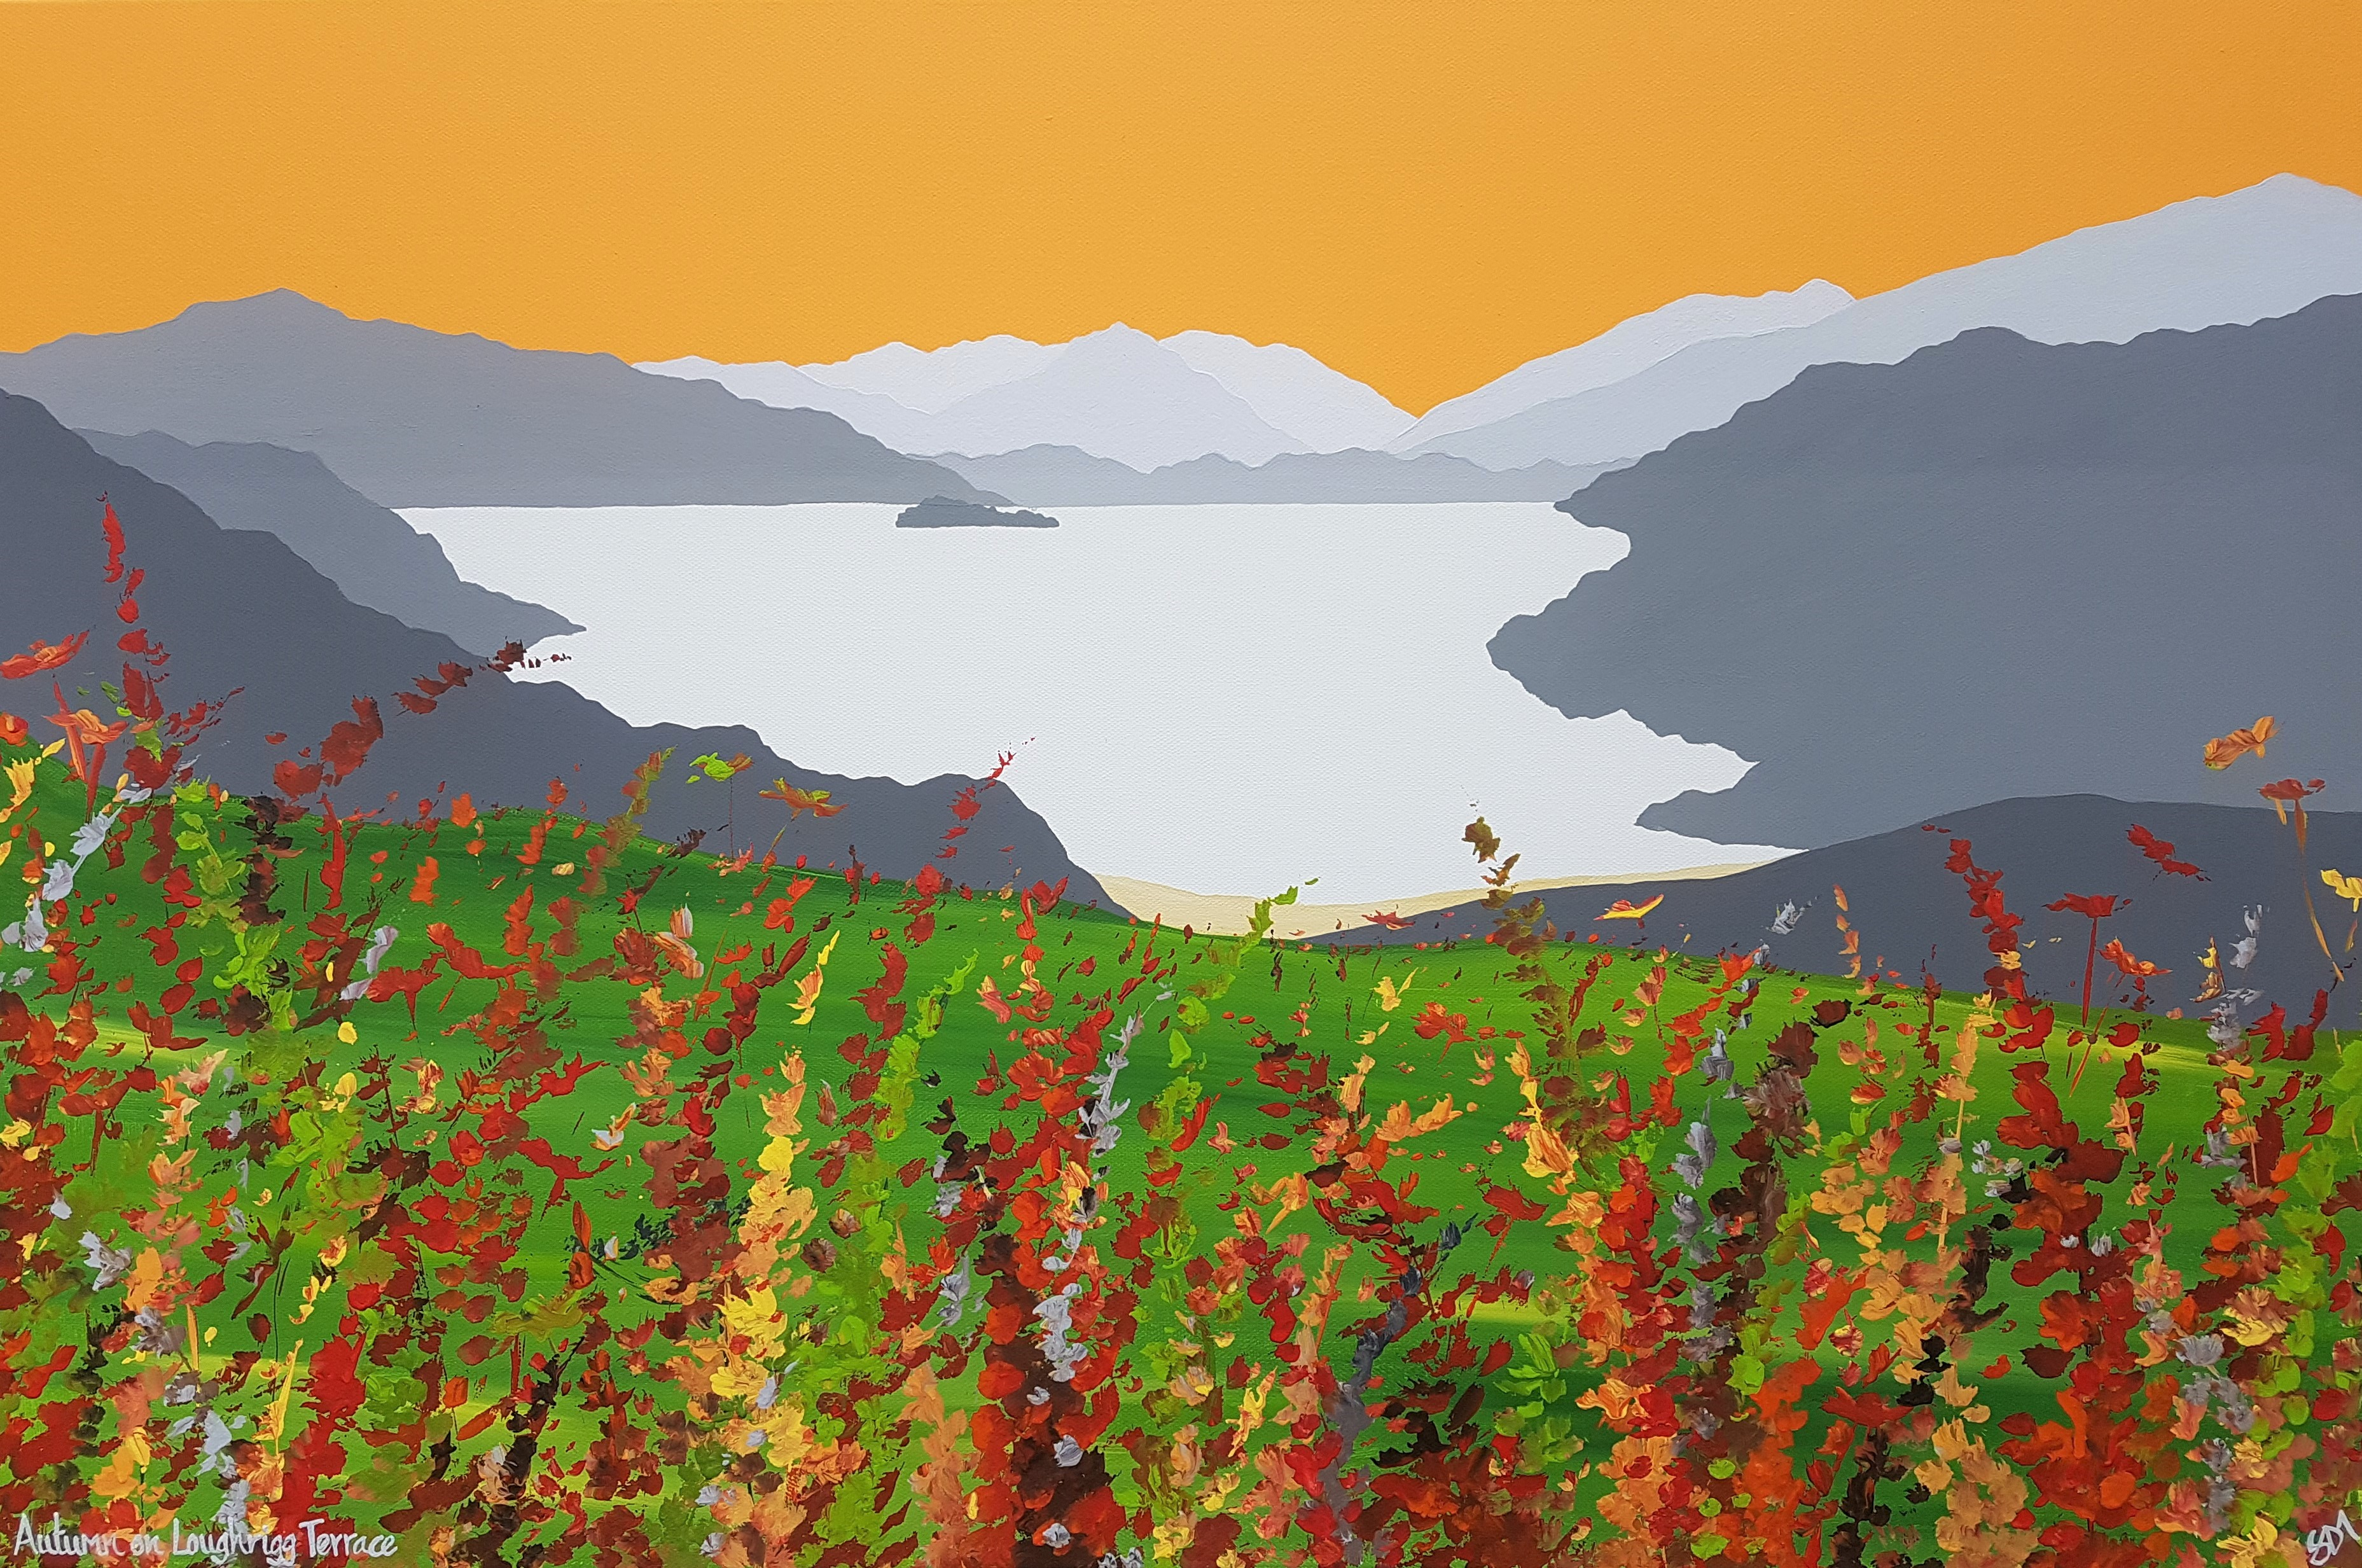 SOLD Autumn on Loughrigg Terrace